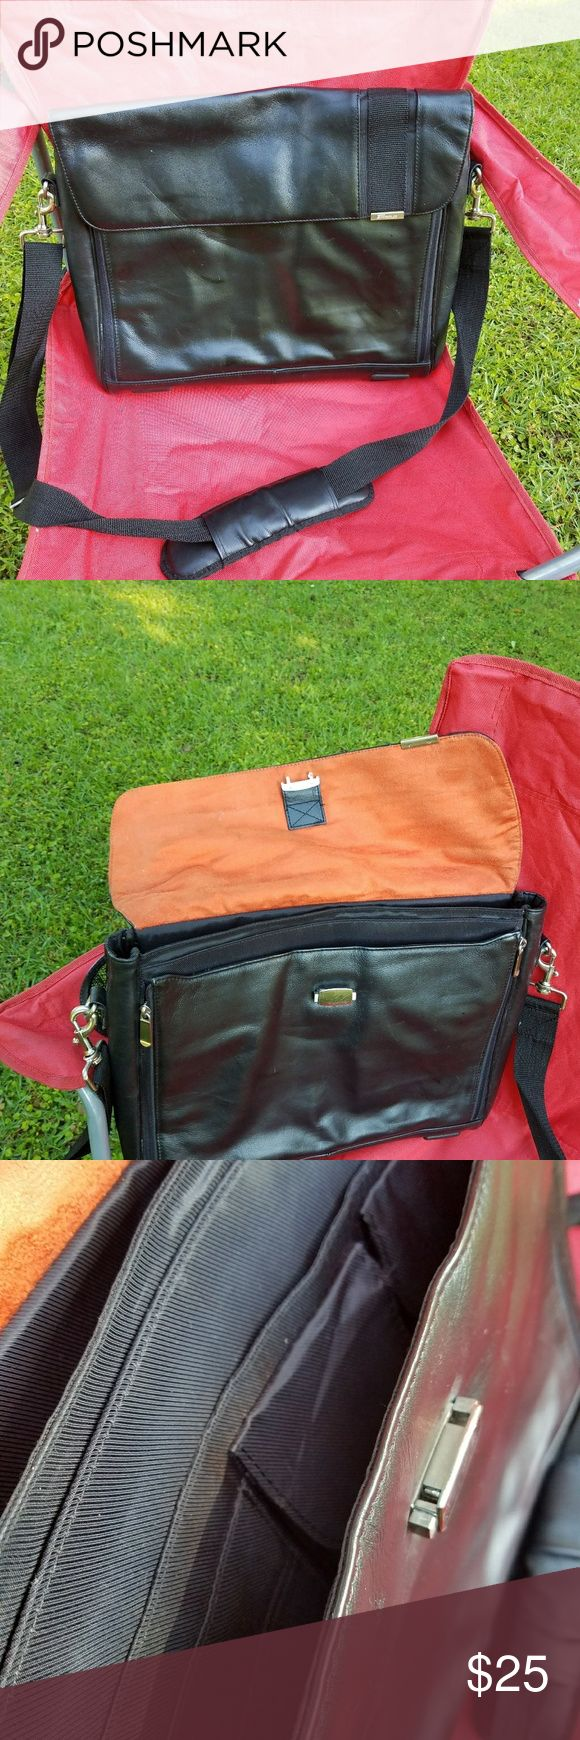 Black Leather  Laptop shoulder bag Black Leather  Laptop shoulder bag...gently used in great condition...many compartments to hold many things...has a very well padded shoulder pad along the shoulder strap...brushed chrome clasp to close the bag Bags Laptop Bags